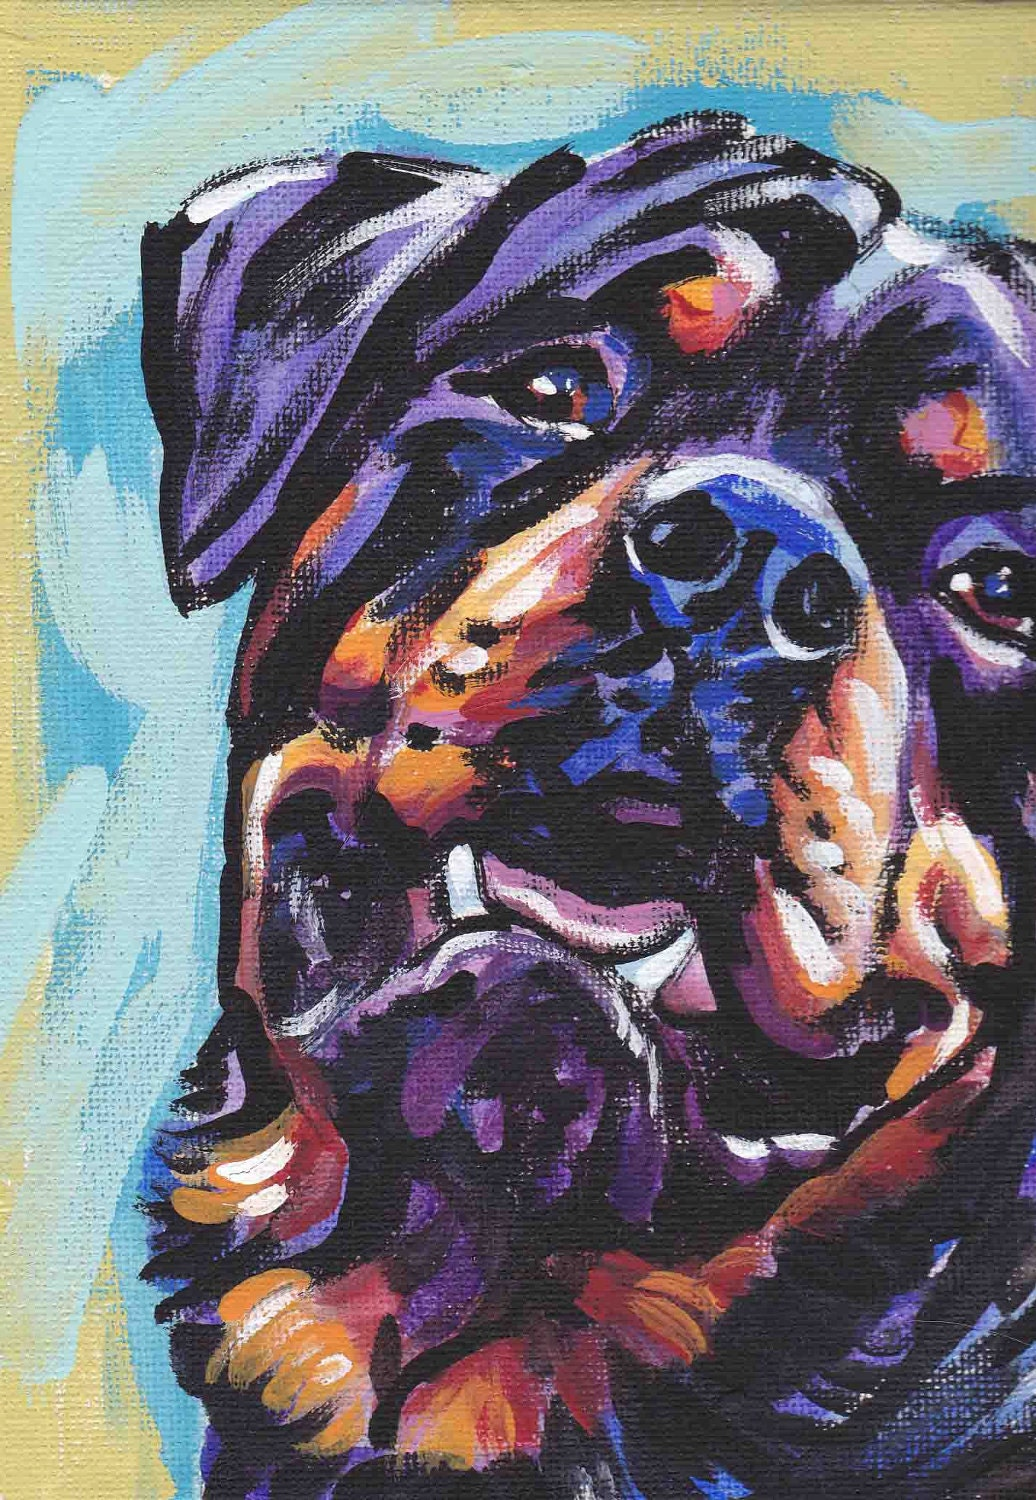 Rottweiler art print dog pop art bright colors 13x19 lea for Dog painting artist